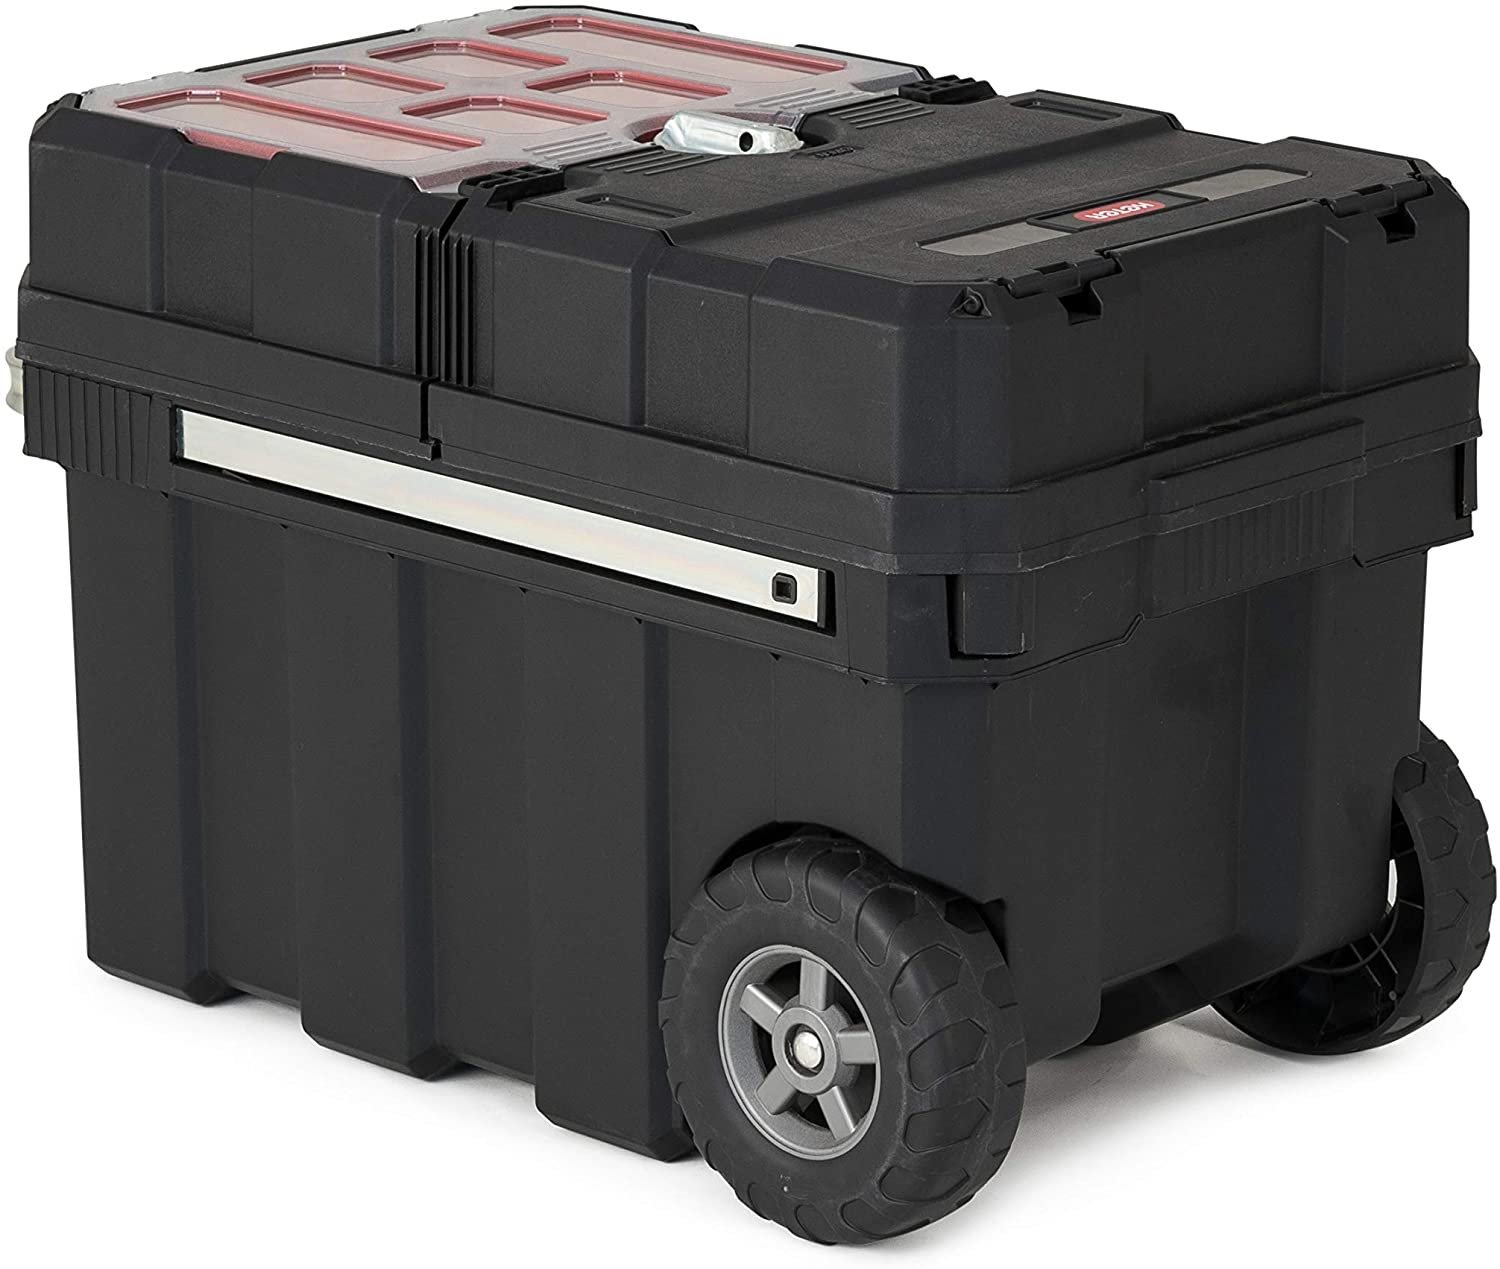 Keter Masterloader Resin Rolling Tool Box - best tool chest under 500